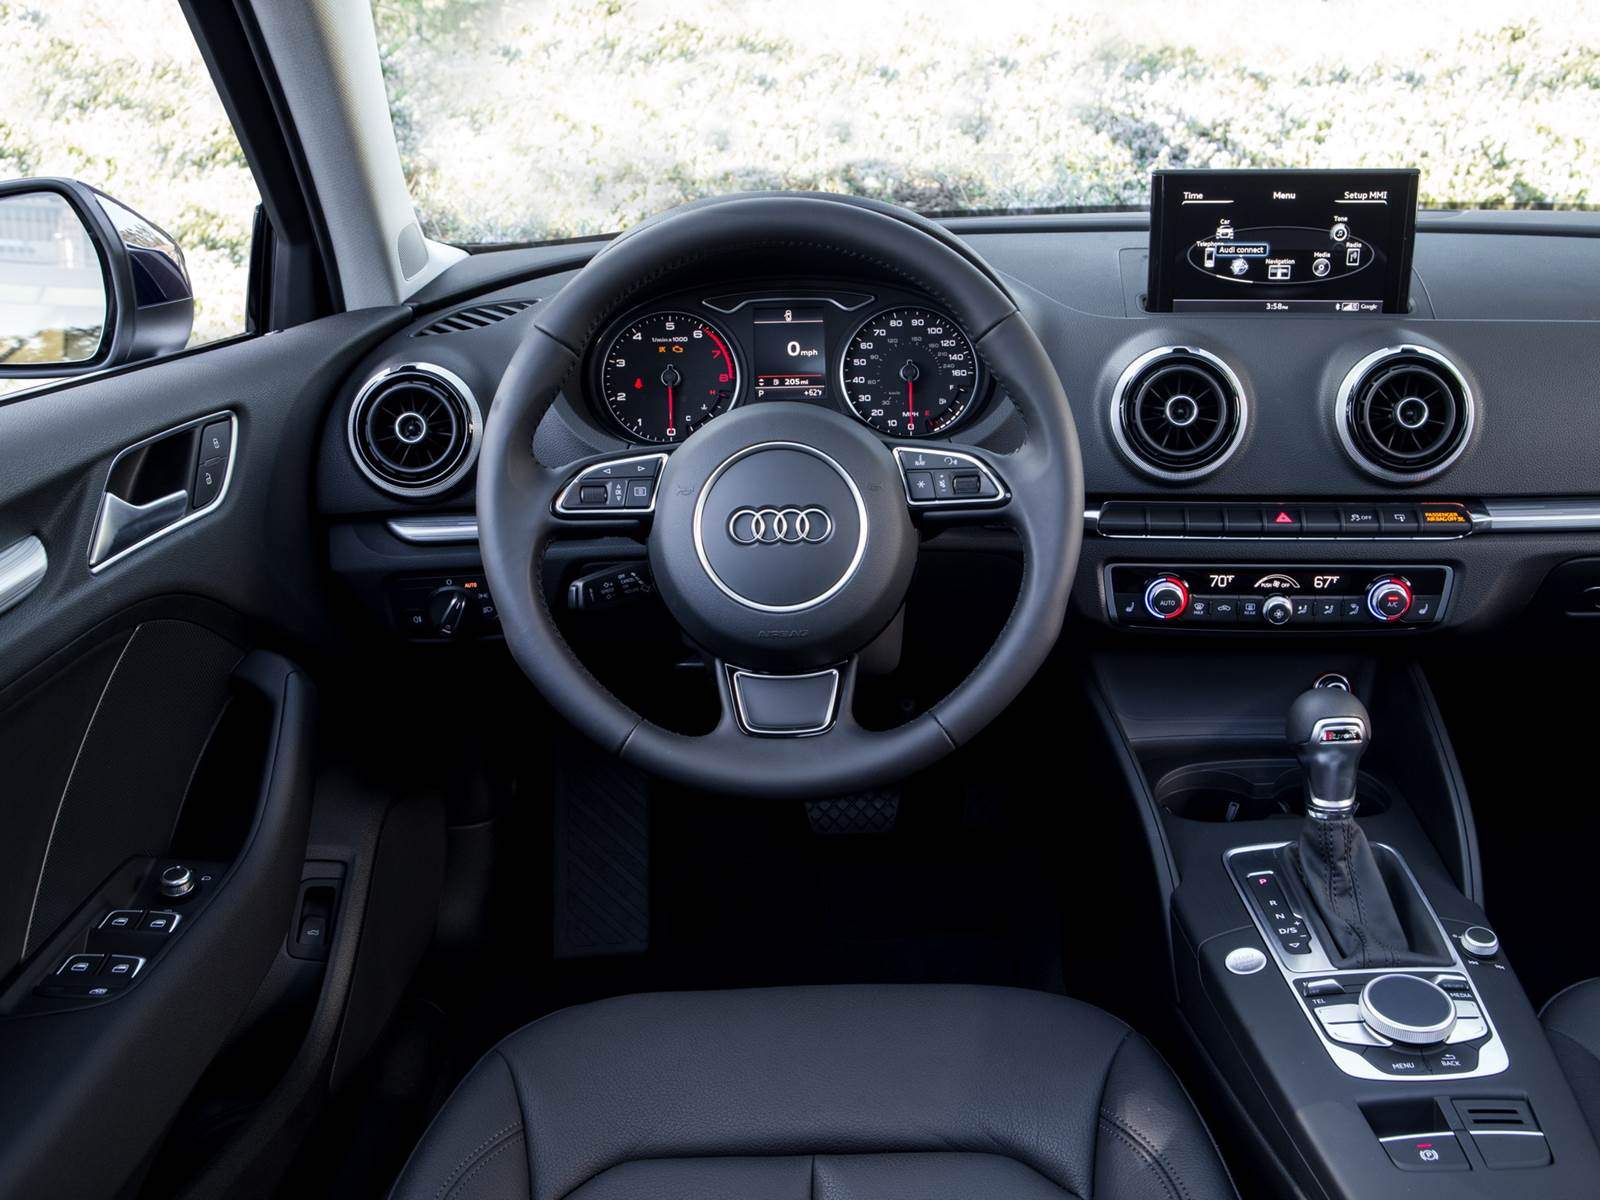 audi a3 sed 2 0 ambition 2016 itens de s rie performance car blog br. Black Bedroom Furniture Sets. Home Design Ideas